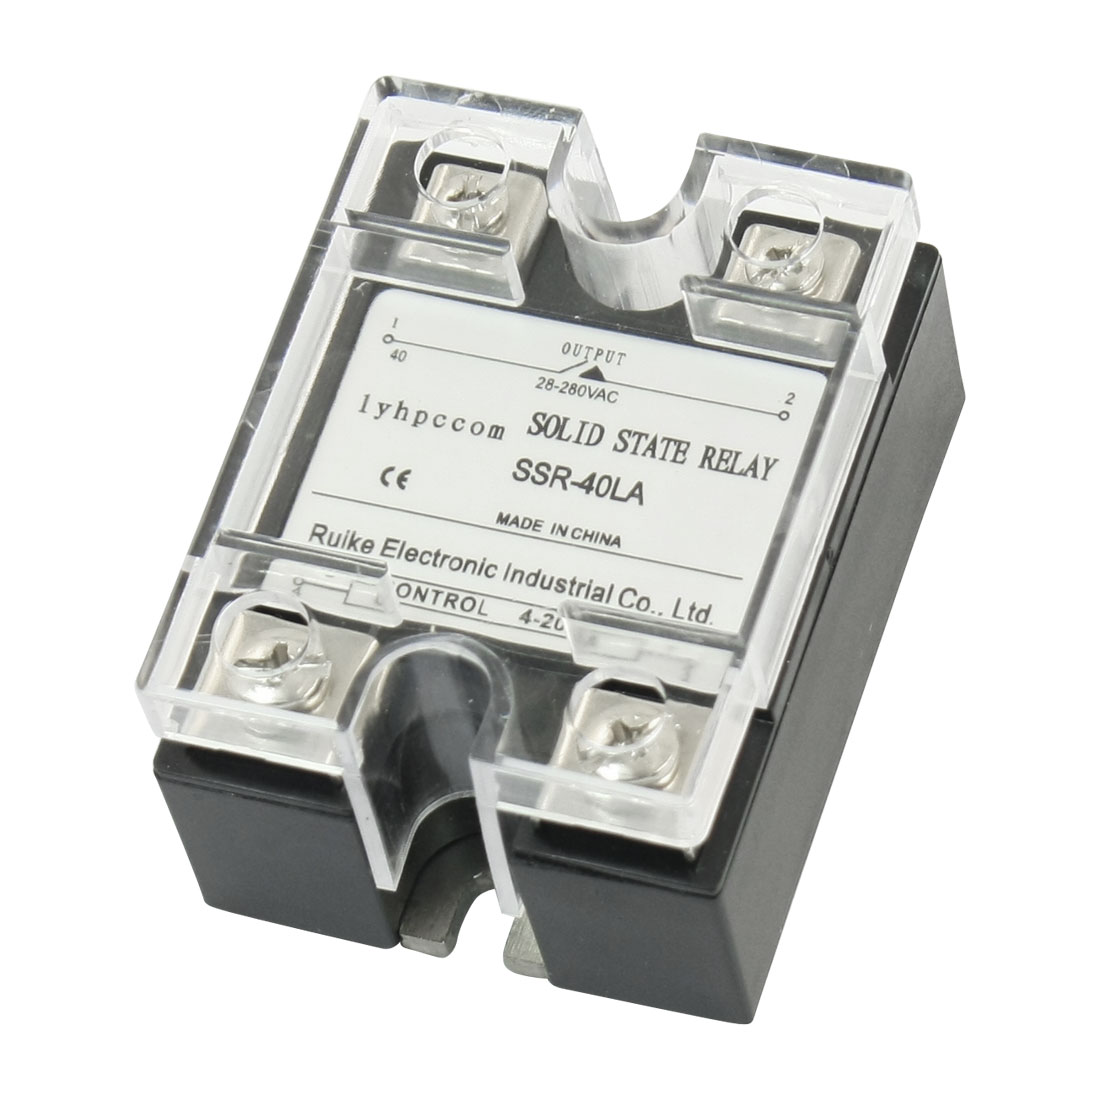 4-20mA Input AC 28-280V 40A Output 4 Screw Terminal Single Phase SSR Solid State Relay w Clear Cover